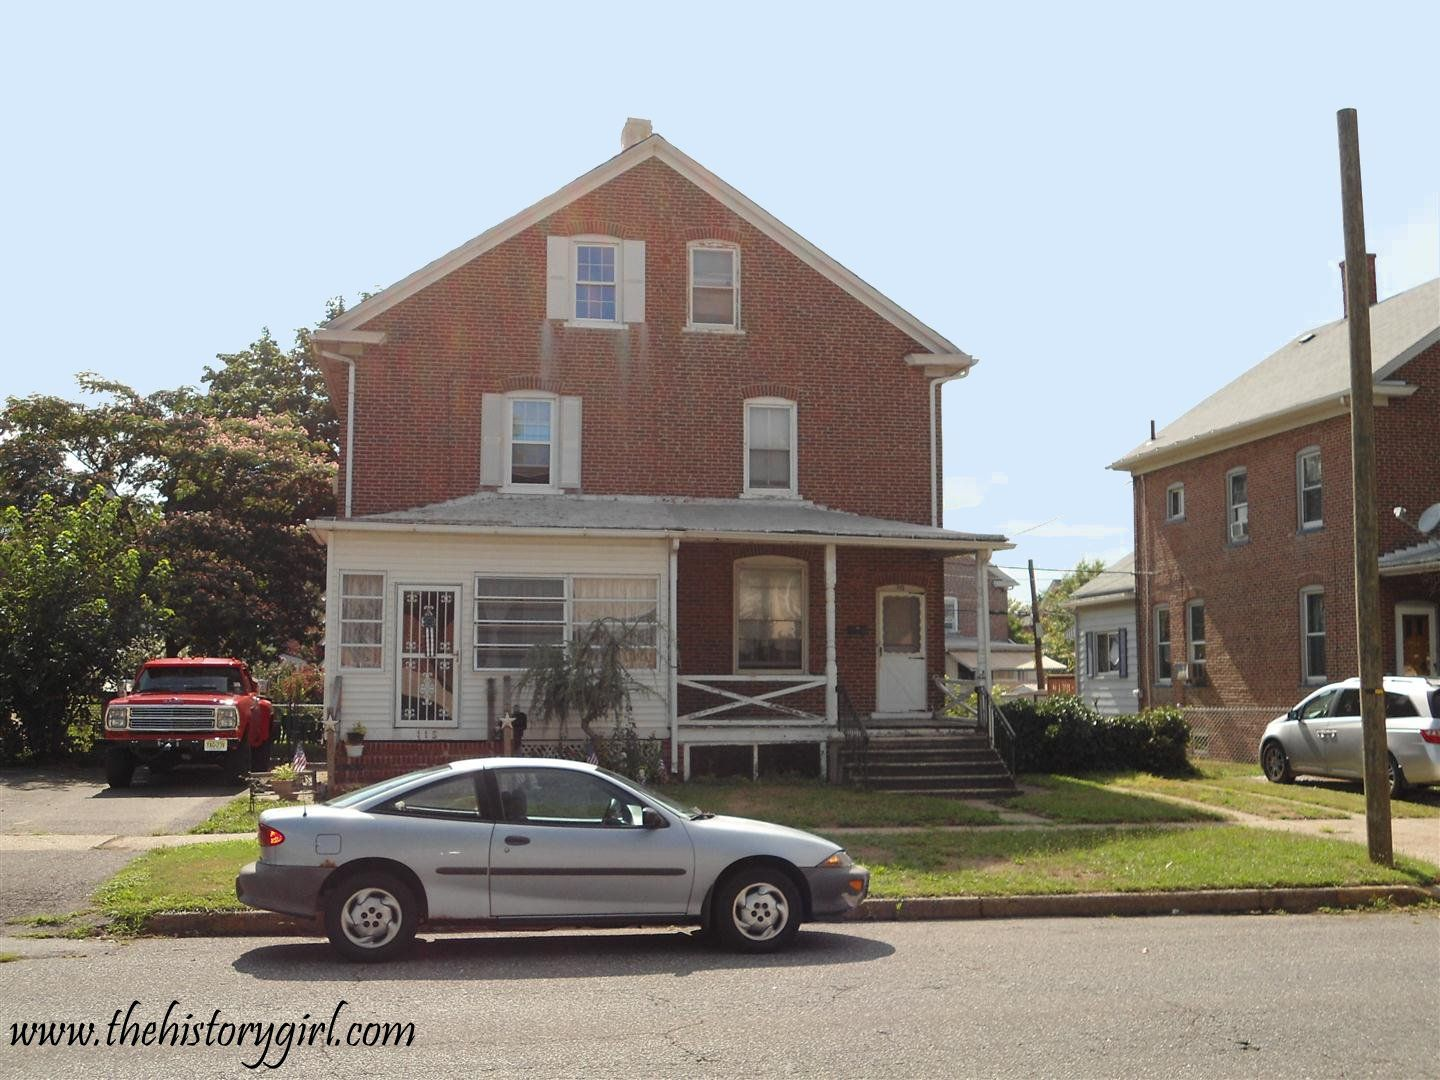 Duplex homes built for skilled workers in Roebling, NJ.